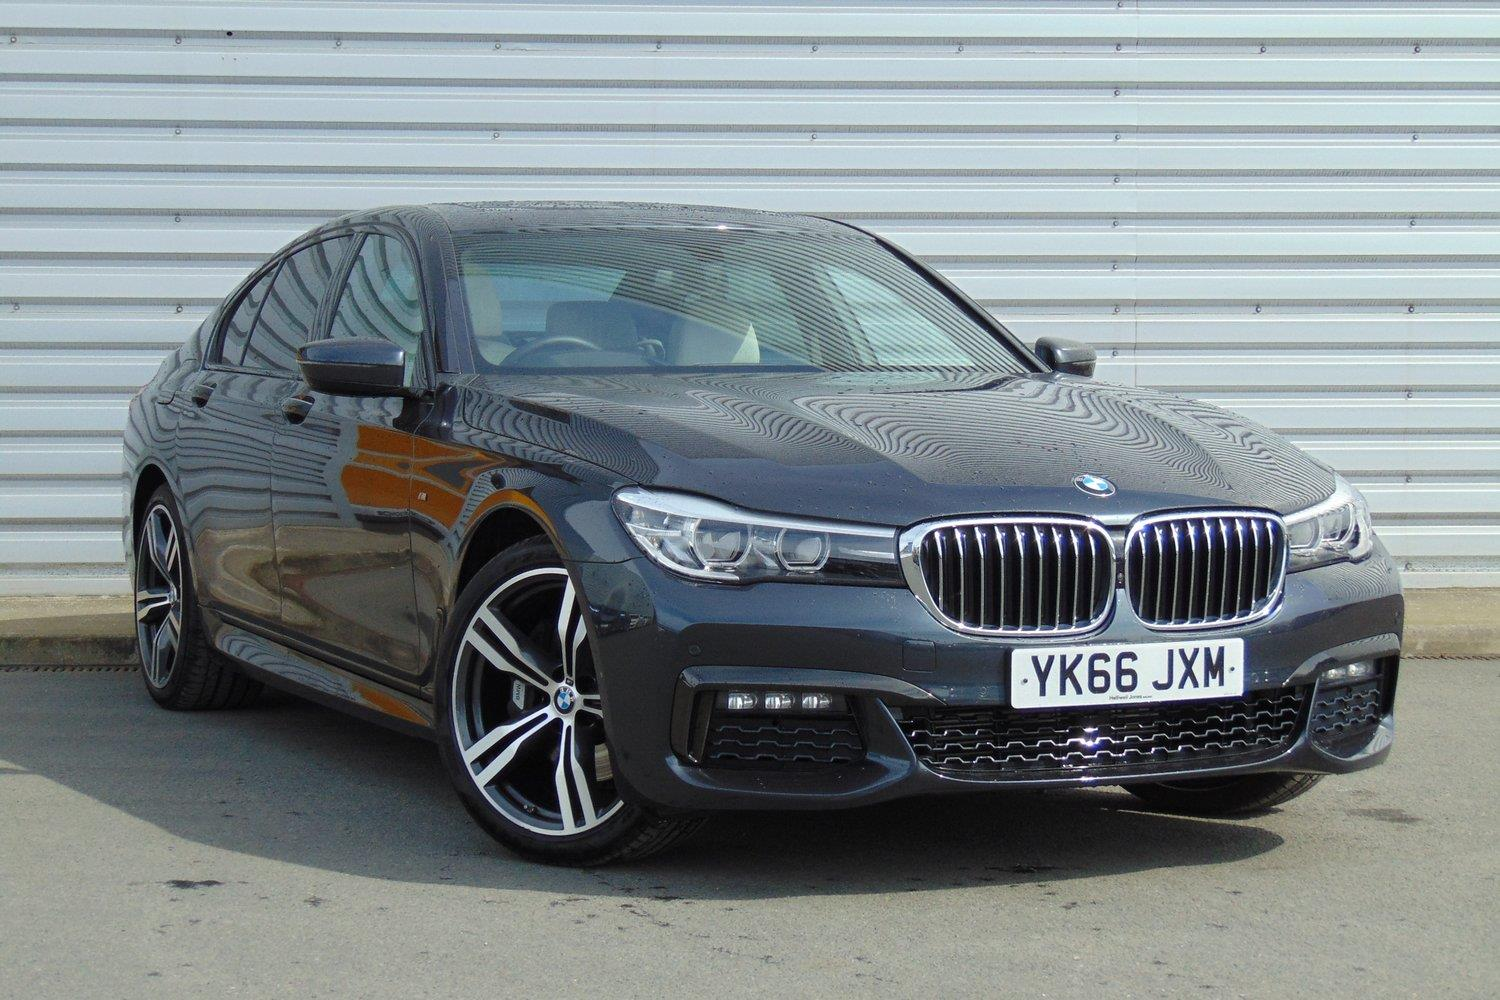 BMW 7 Series Saloon YK66JXM - Image 10